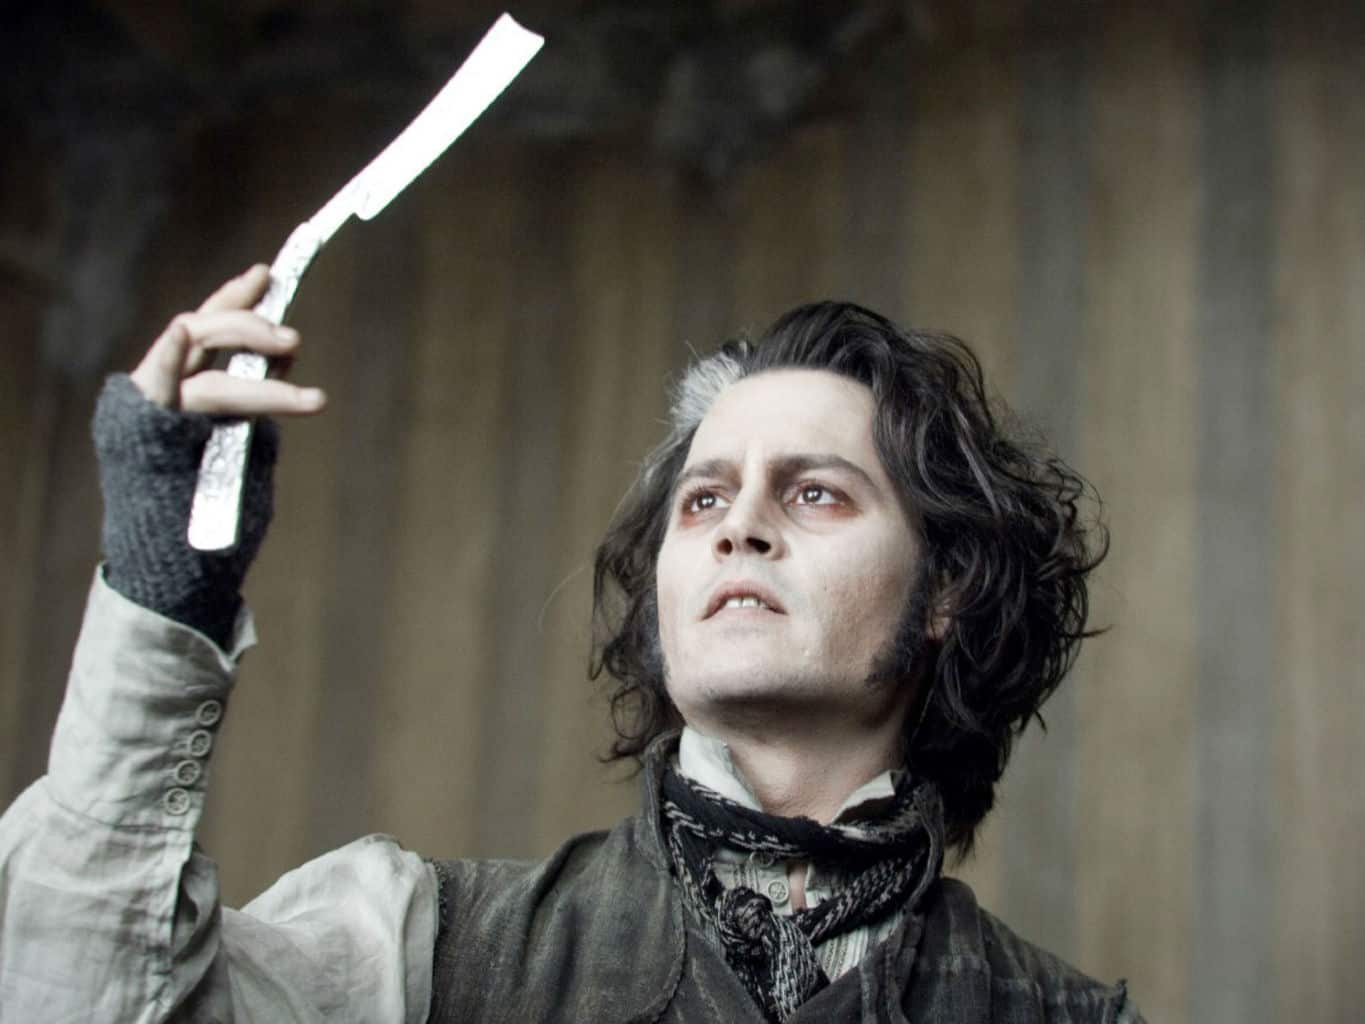 A picture of Johnny Depp in Sweeney Todd © Warner Brothers. He holds out a razor blade in front of his face